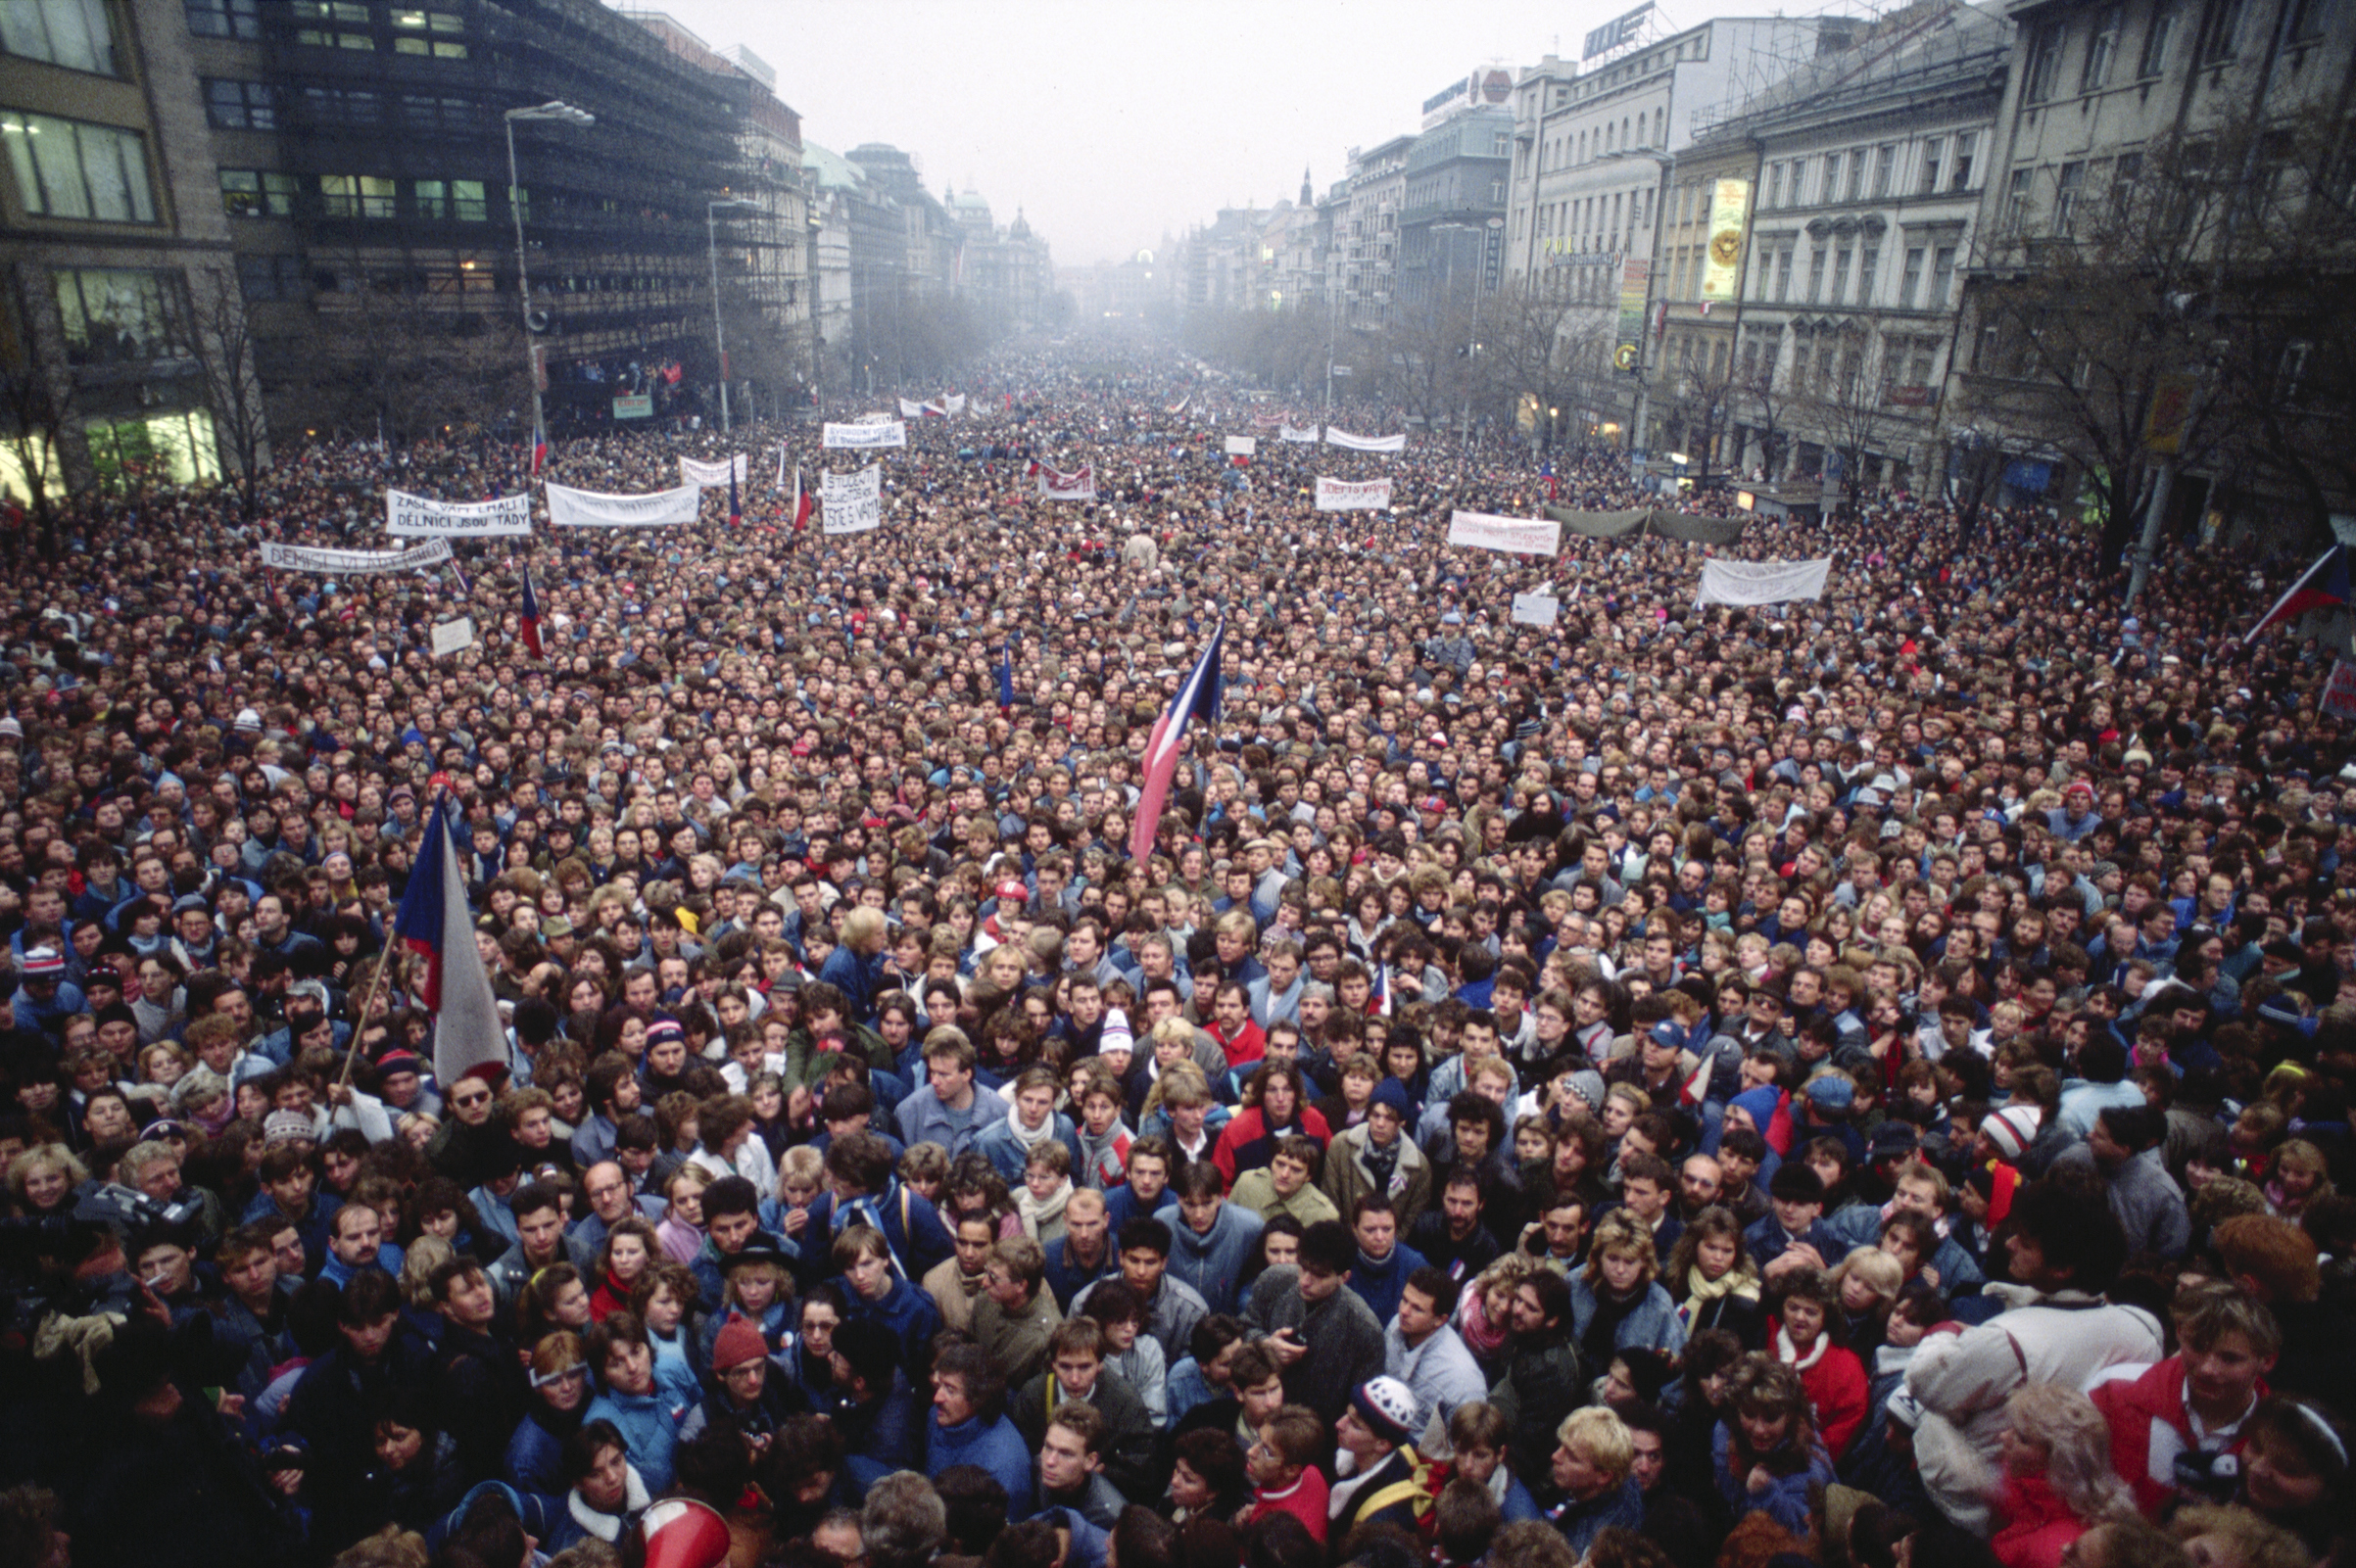 Czechoslovakian citizens flood the streets of Prague during the Velvet Revolution in 1989